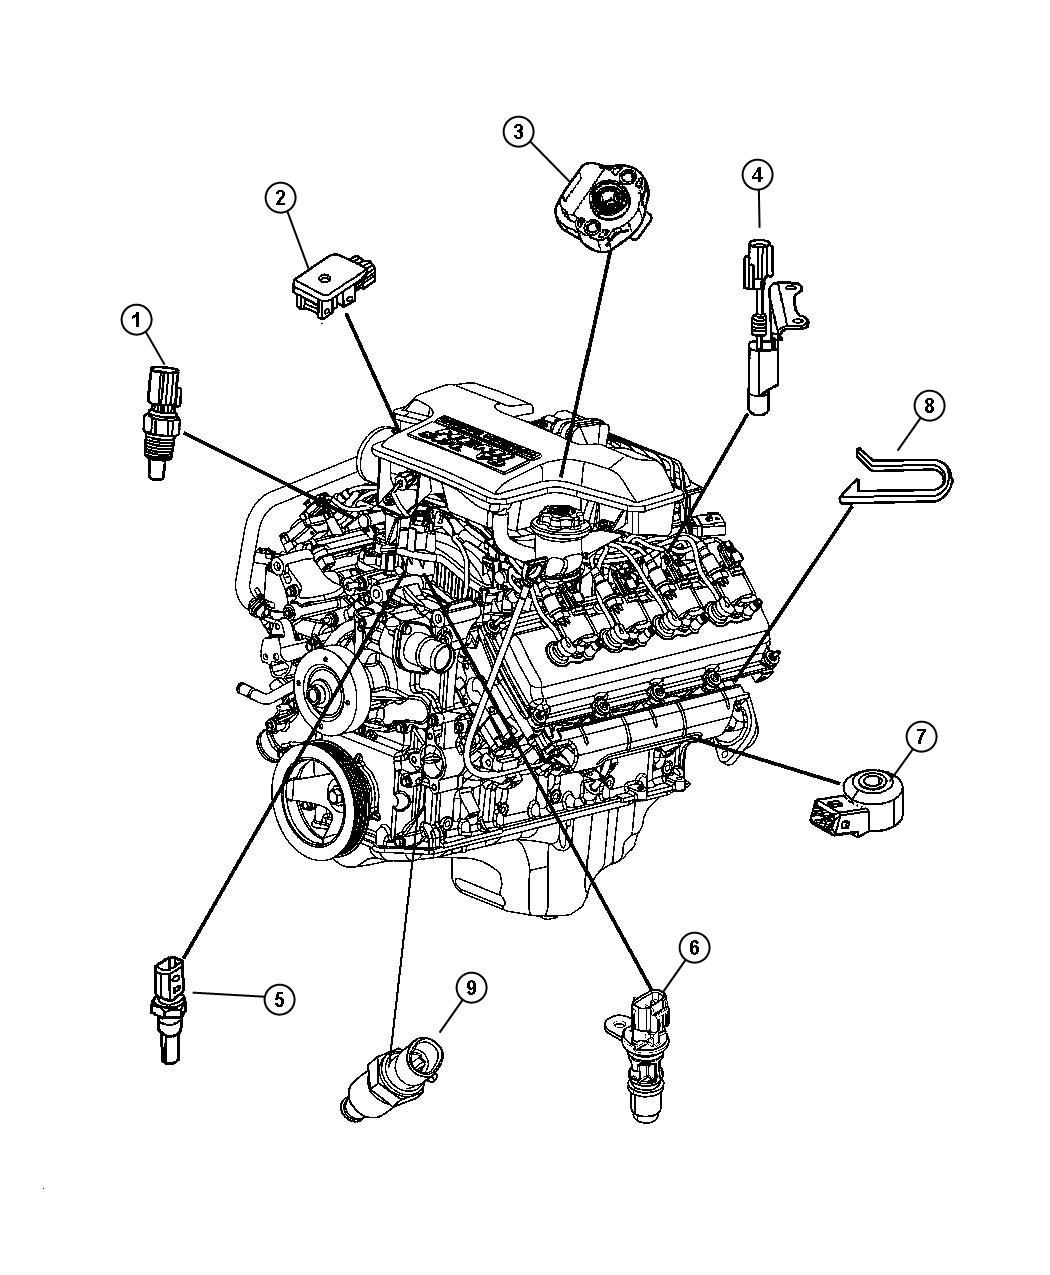 Jeep 5 7 Hemi Engine Diagram - Wiring Liry Diagram A4  Liter Dodge Engine Diagram on 4.7 dodge serpentine belt diagram, 4.7 ho jeep grand cherokee cylinder diagram, 2002 dodge 4.7 engine diagram, 2004 durango thermostat diagram, 2003 dodge ram electrical diagram, dodge 4.7 timing chain diagram, 2004 dodge magnum steering and suspension diagram, 2014 ram engine diagram, 2004 durango 5.7 engine diagram, 2005 chrysler magnum 5 7 liter hemi cylinder torque specifications diagram, 2001 dodge durango 4.7 engine diagram, jeep 4.7 engine diagram,